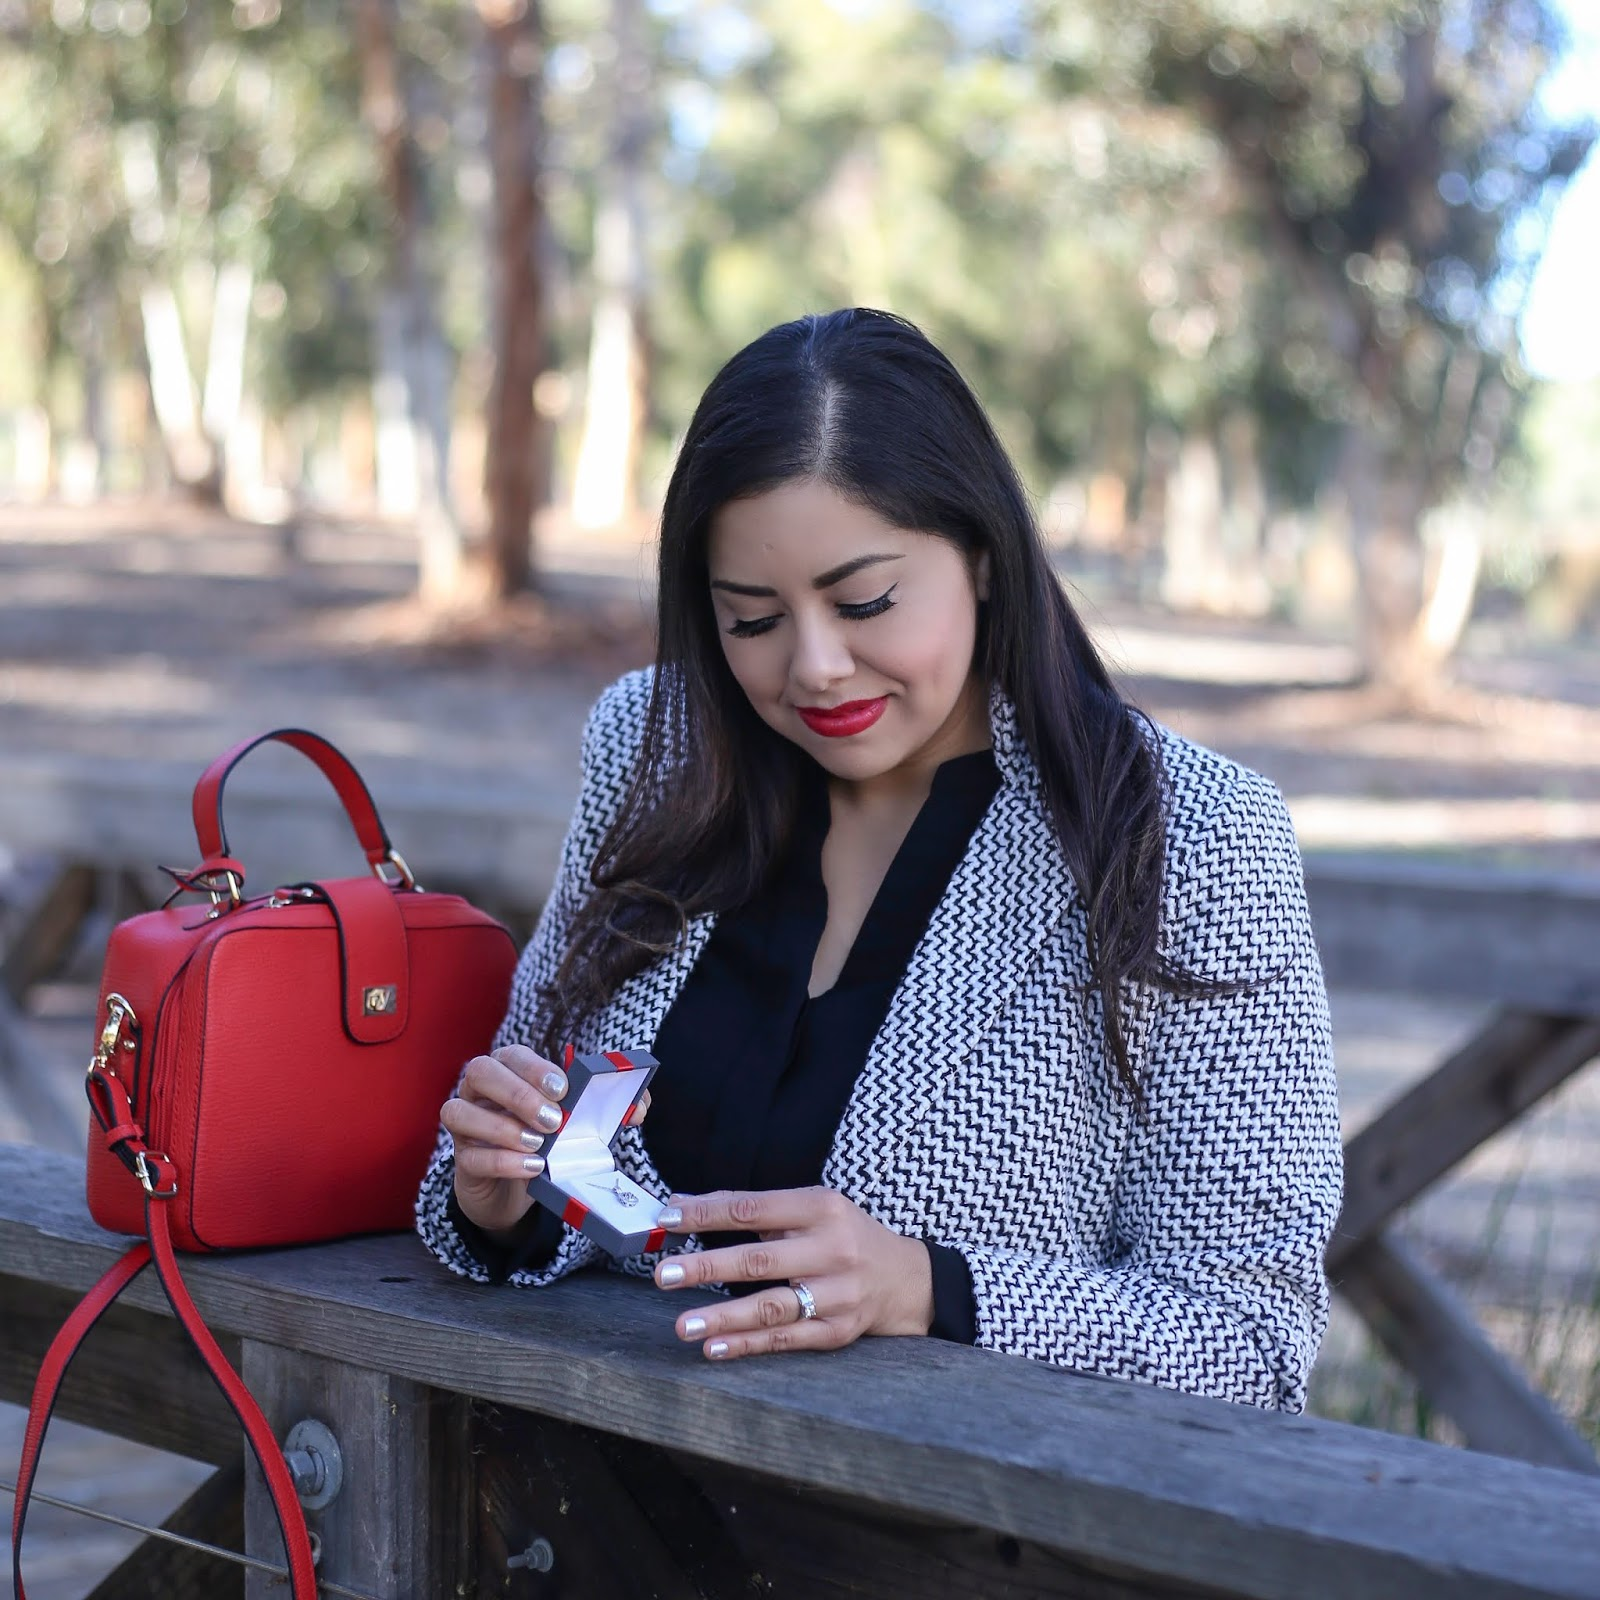 JCPenney fine jewelry, San Diego Style Blogger, red galian handbags